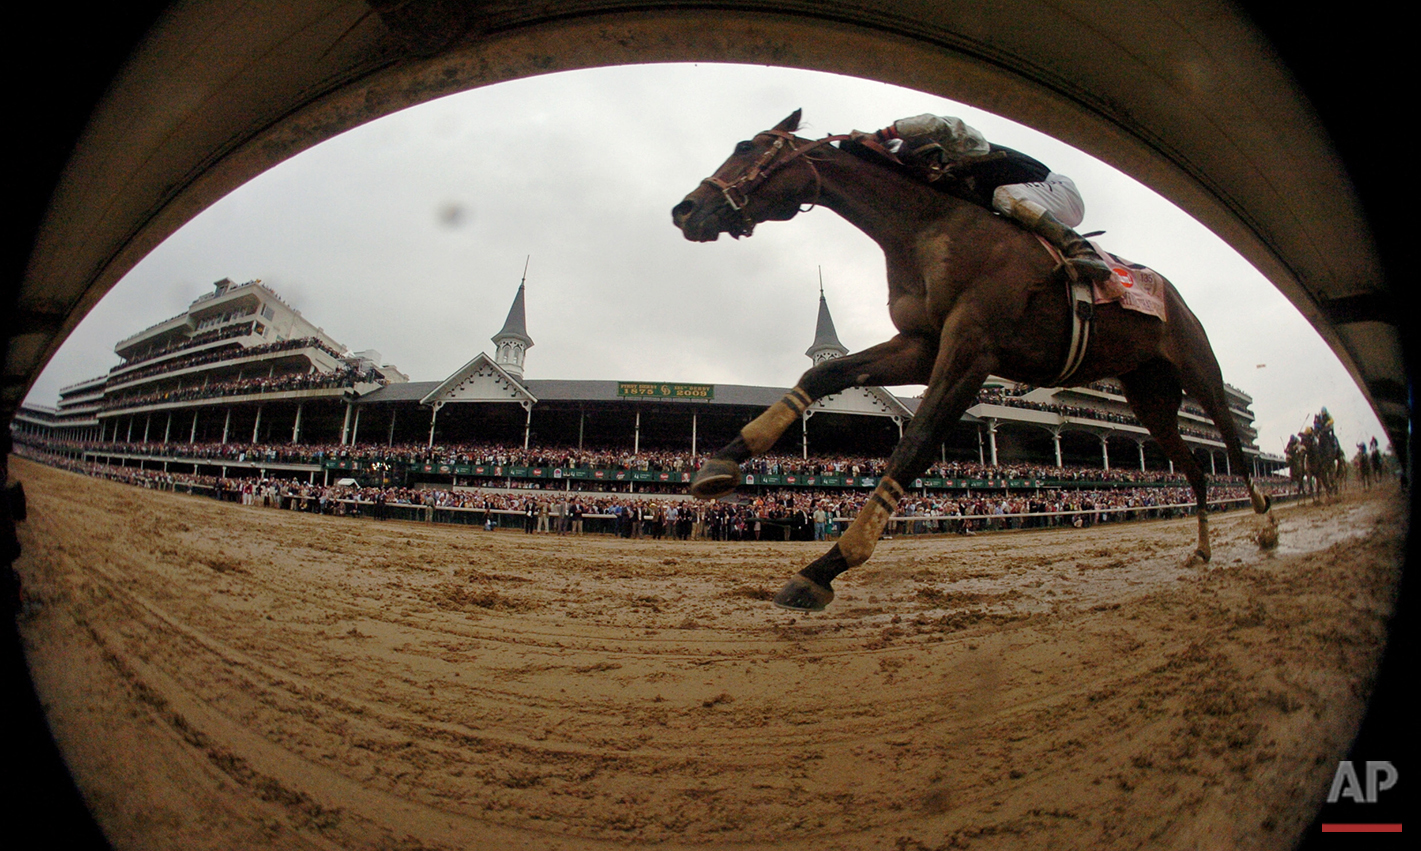 Calvin Borel rides Mine That Bird to a victory during the 135th Kentucky Derby horse race at Churchill Downs, Saturday, May 2, 2009, in Louisville, Ky. (AP Photo/John Flavell)